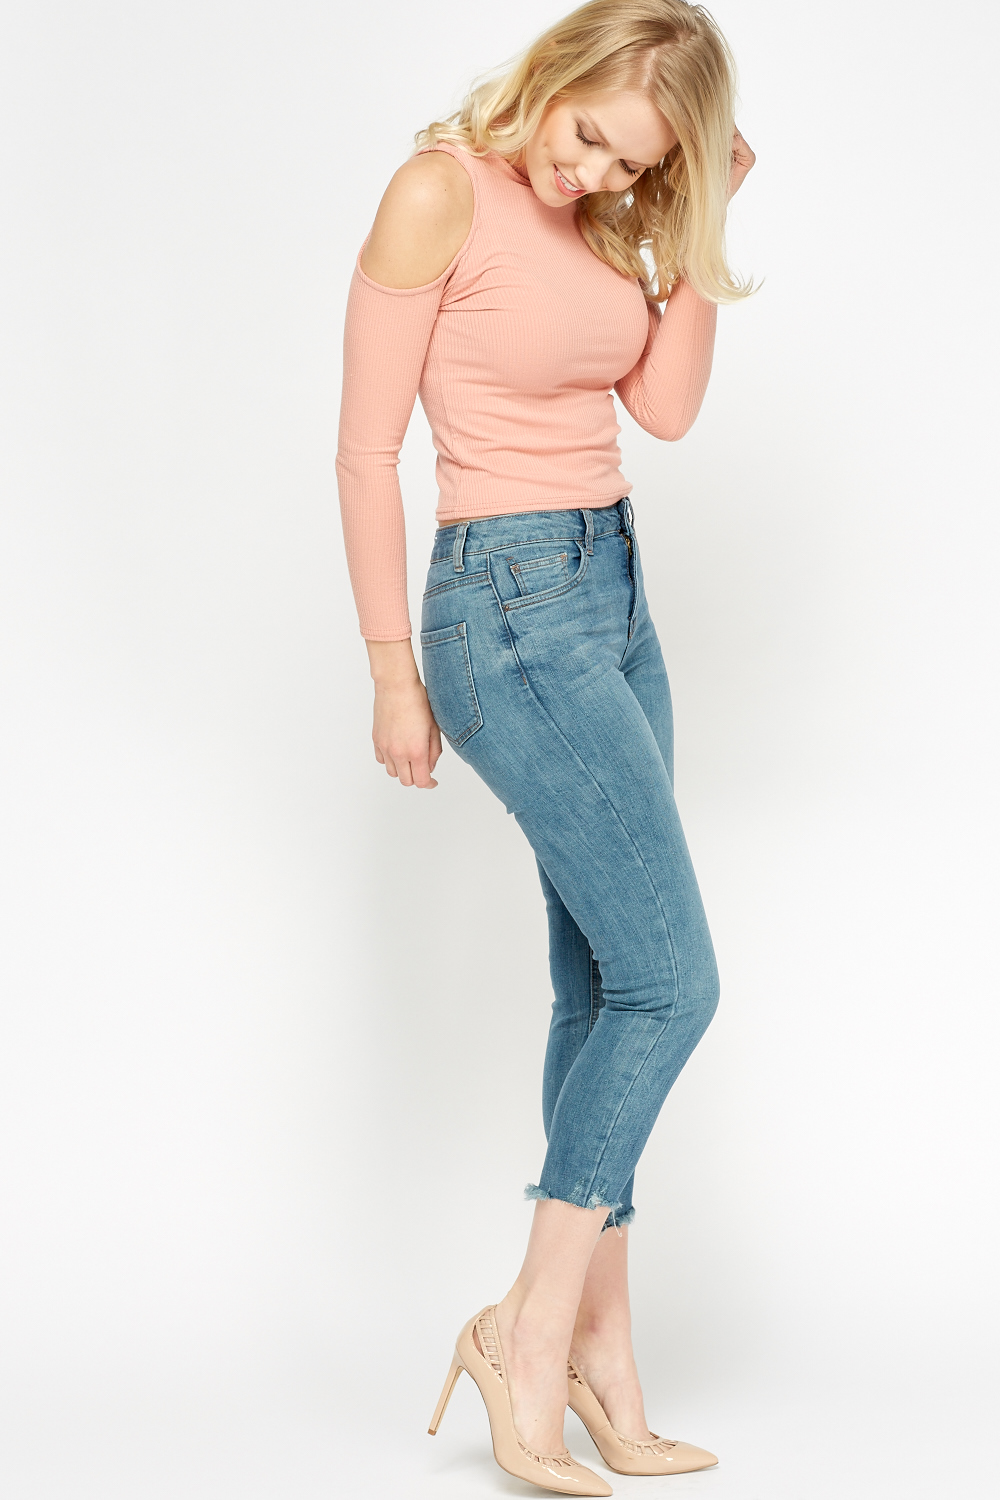 Womens Loose Jeans